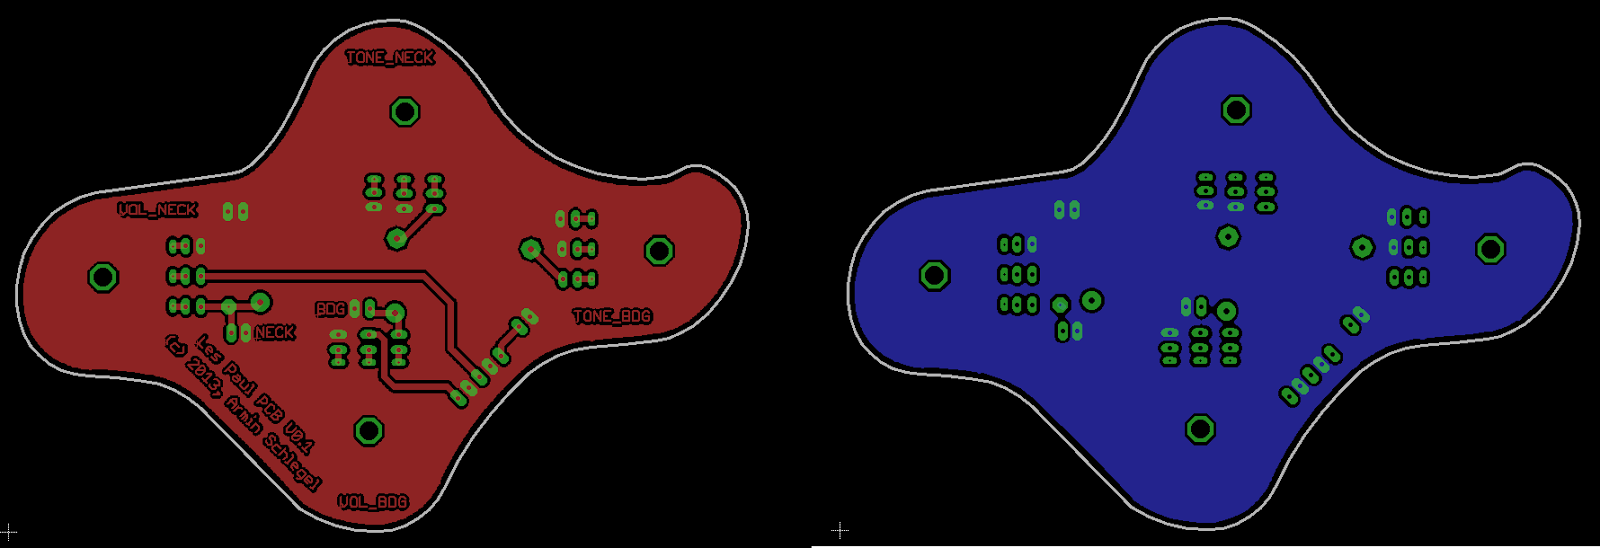 New Wiring For My Epiphone Les Paul Edmar Hobby Electronic 2012 Standard Pcb Diagram And A Layout Fitting In The Milling Of